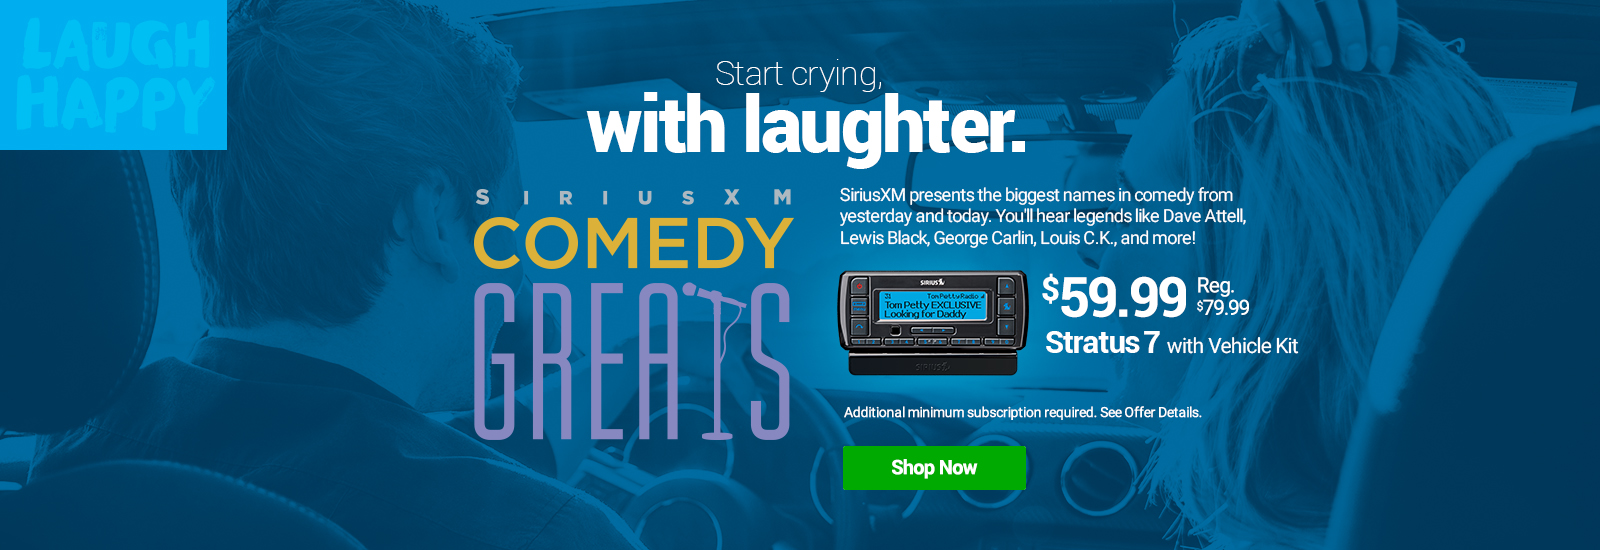 Hear Comedy Greats On SiriusXM with Stratus 7 with Vehicle Kit